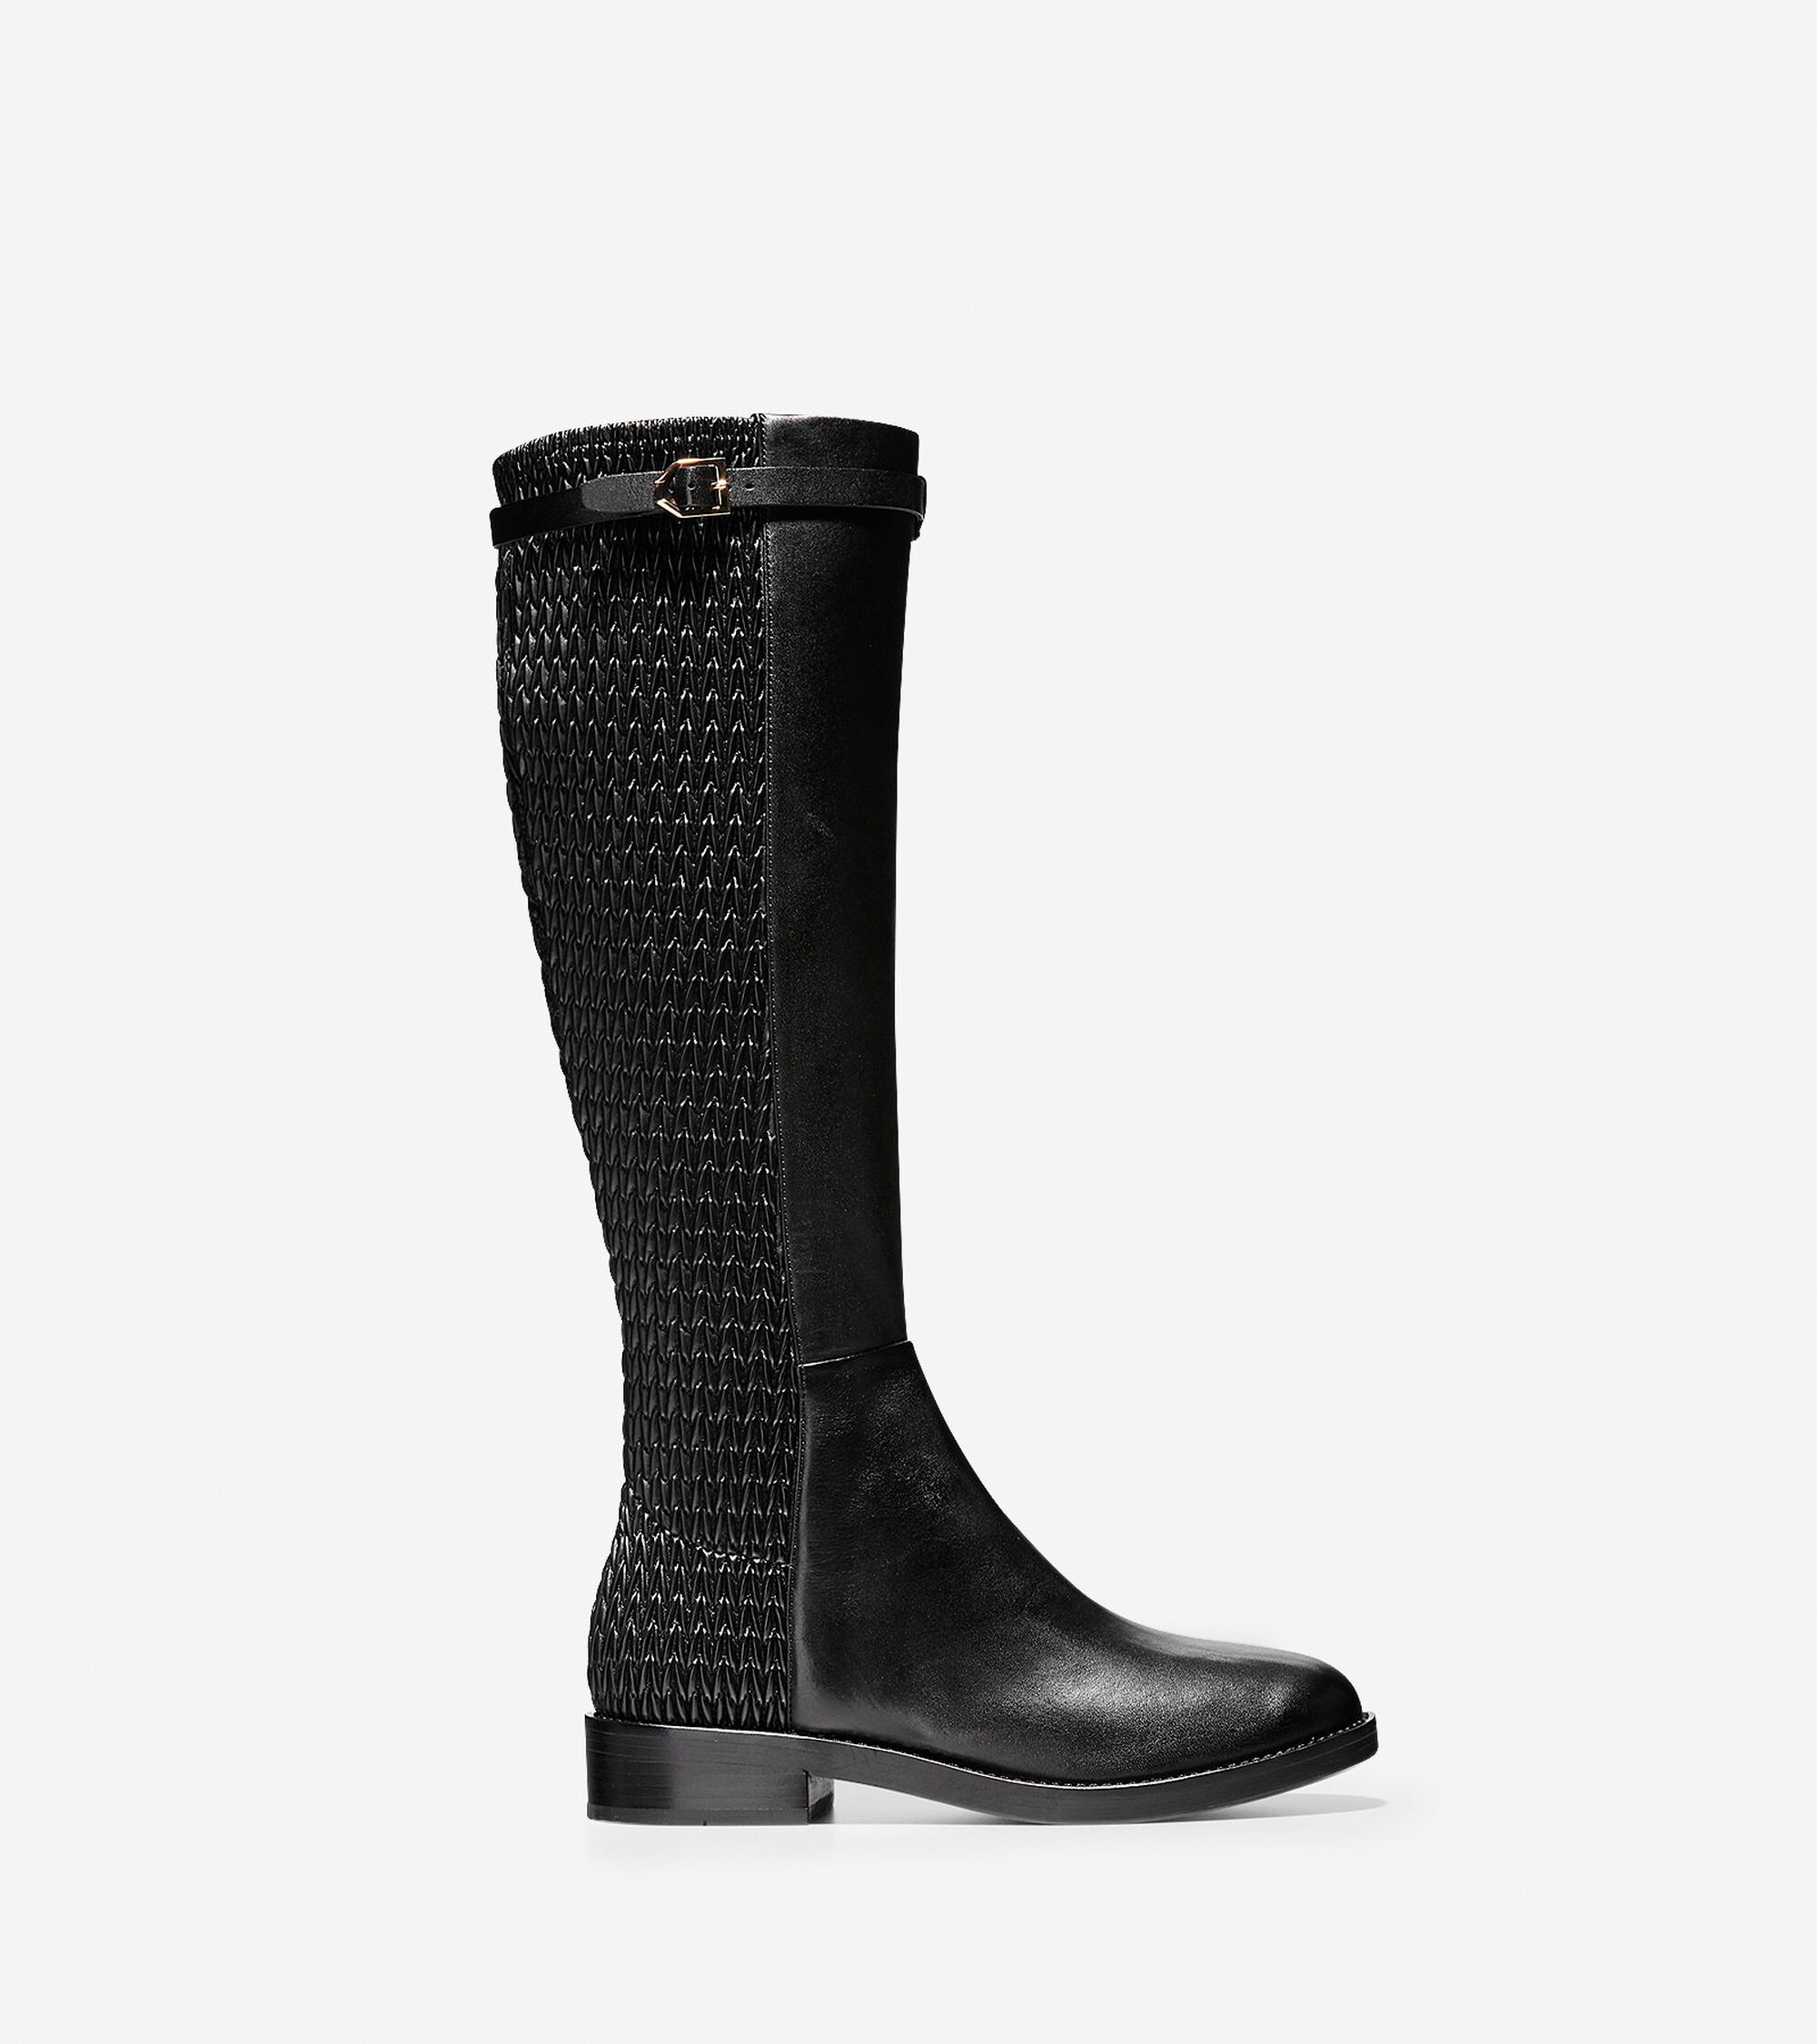 32fe392d168 Women s Lexi Grand Stretch Strap Boots in Black